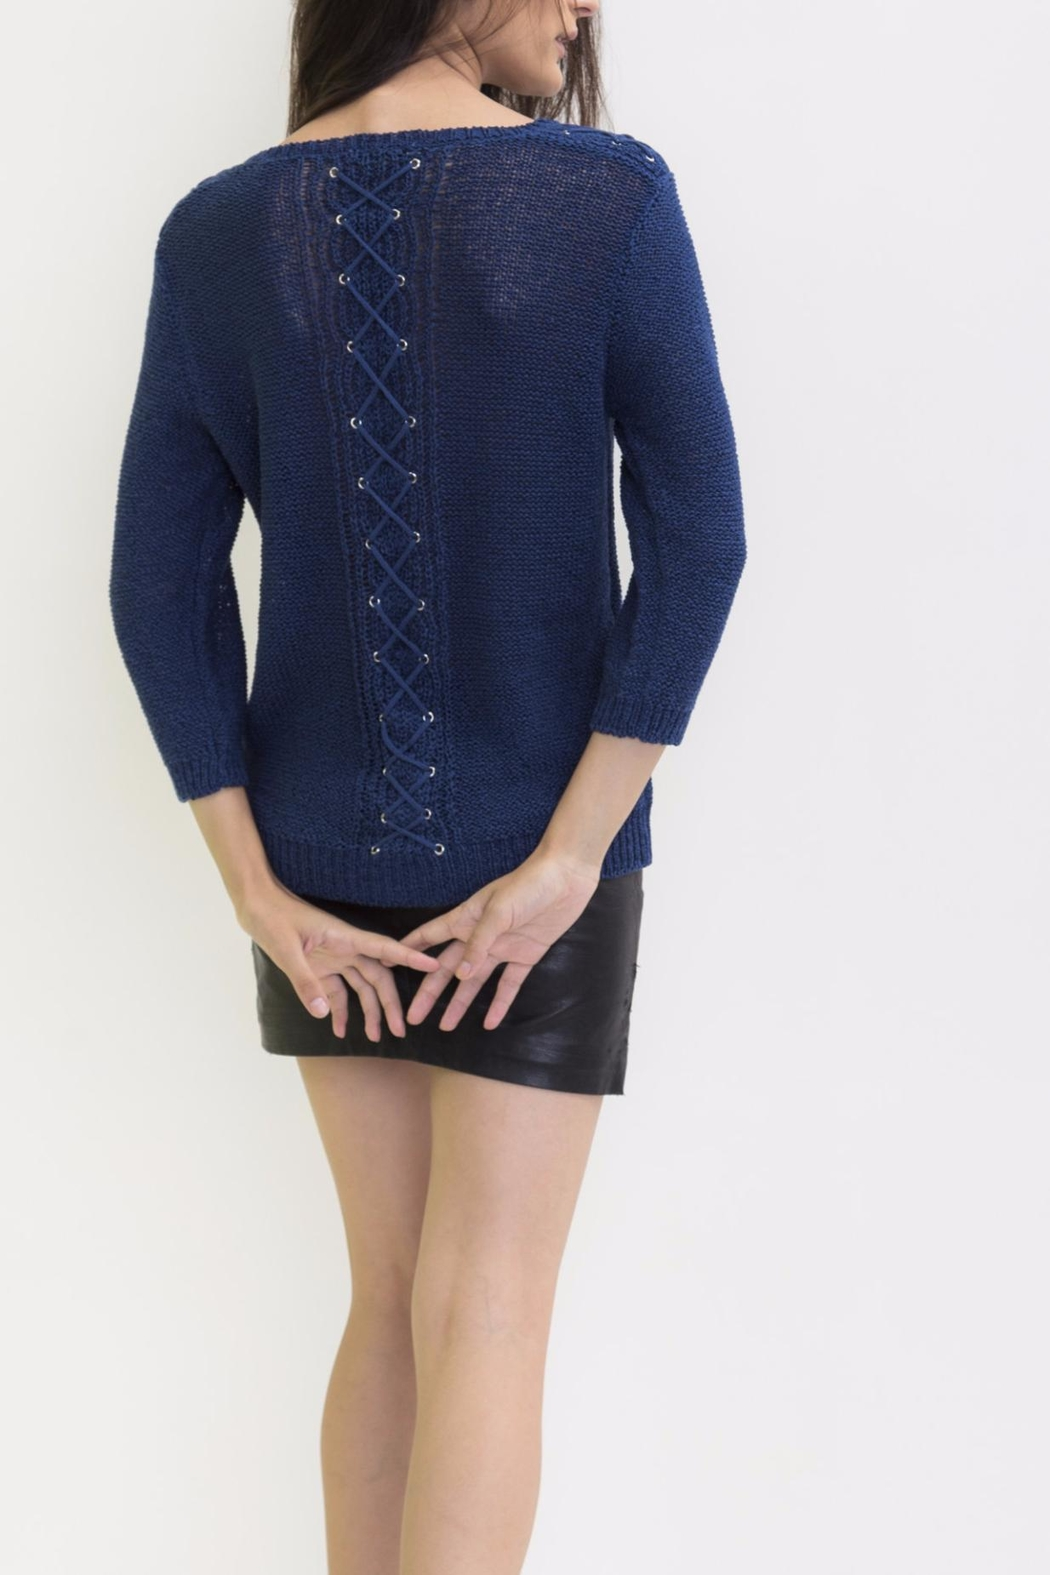 Maude Navy V Neck Sweater from Saratoga by Laura M — Shoptiques